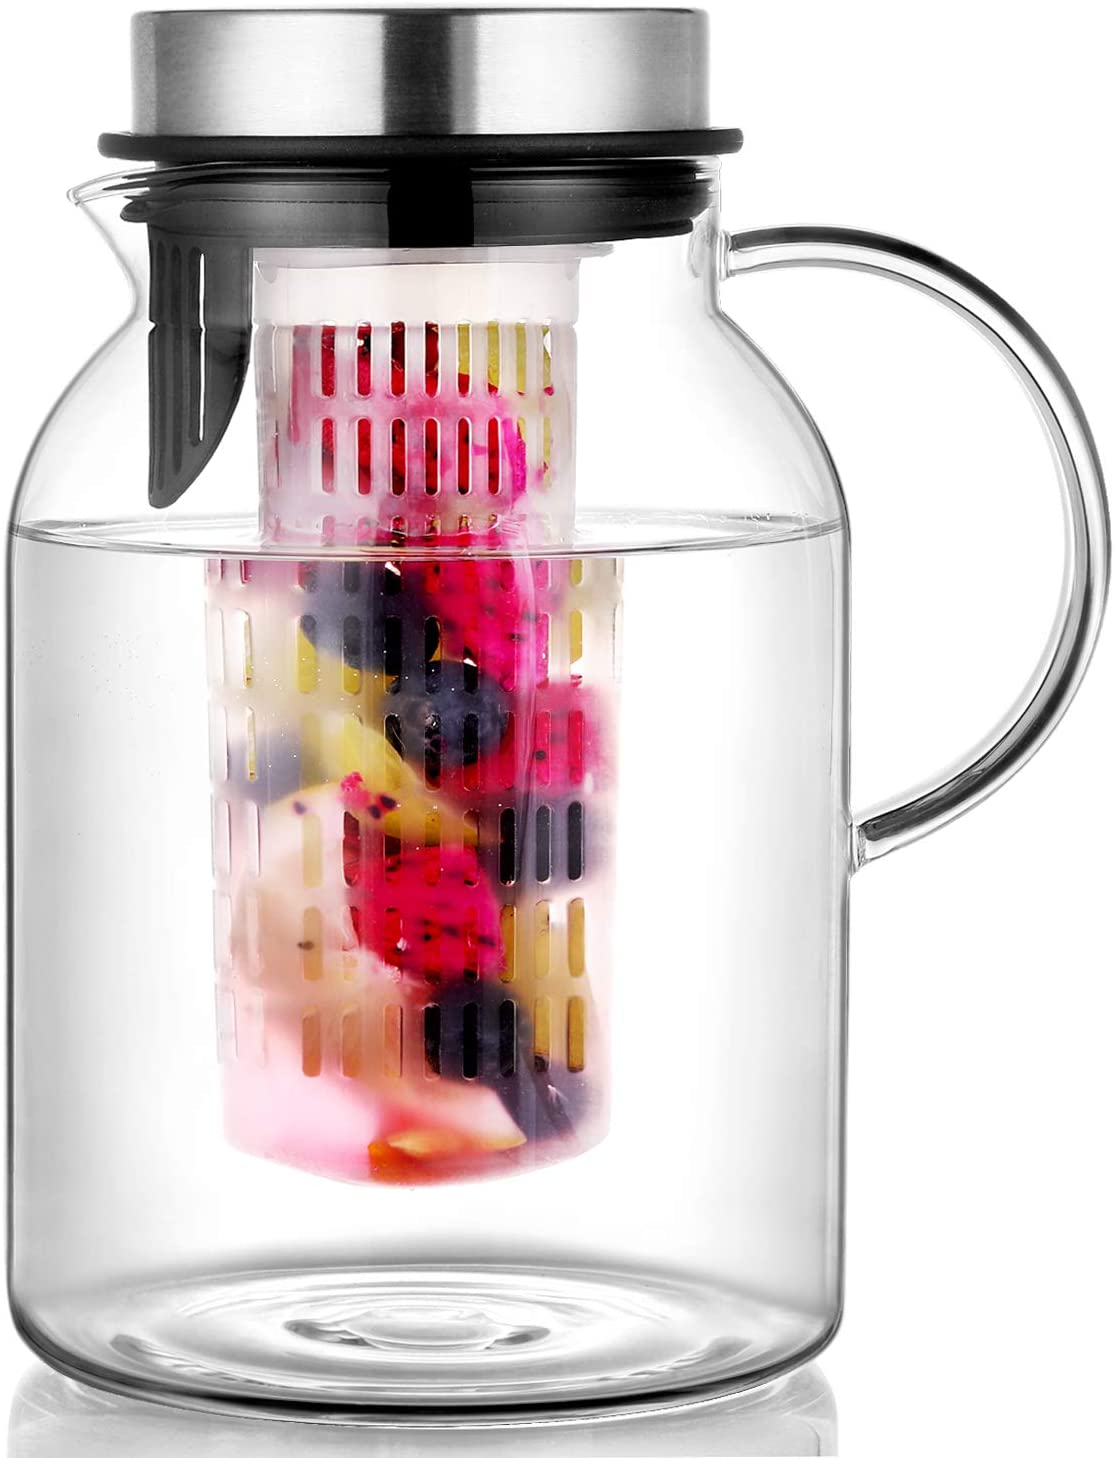 Hiware Glass Fruit Infuser